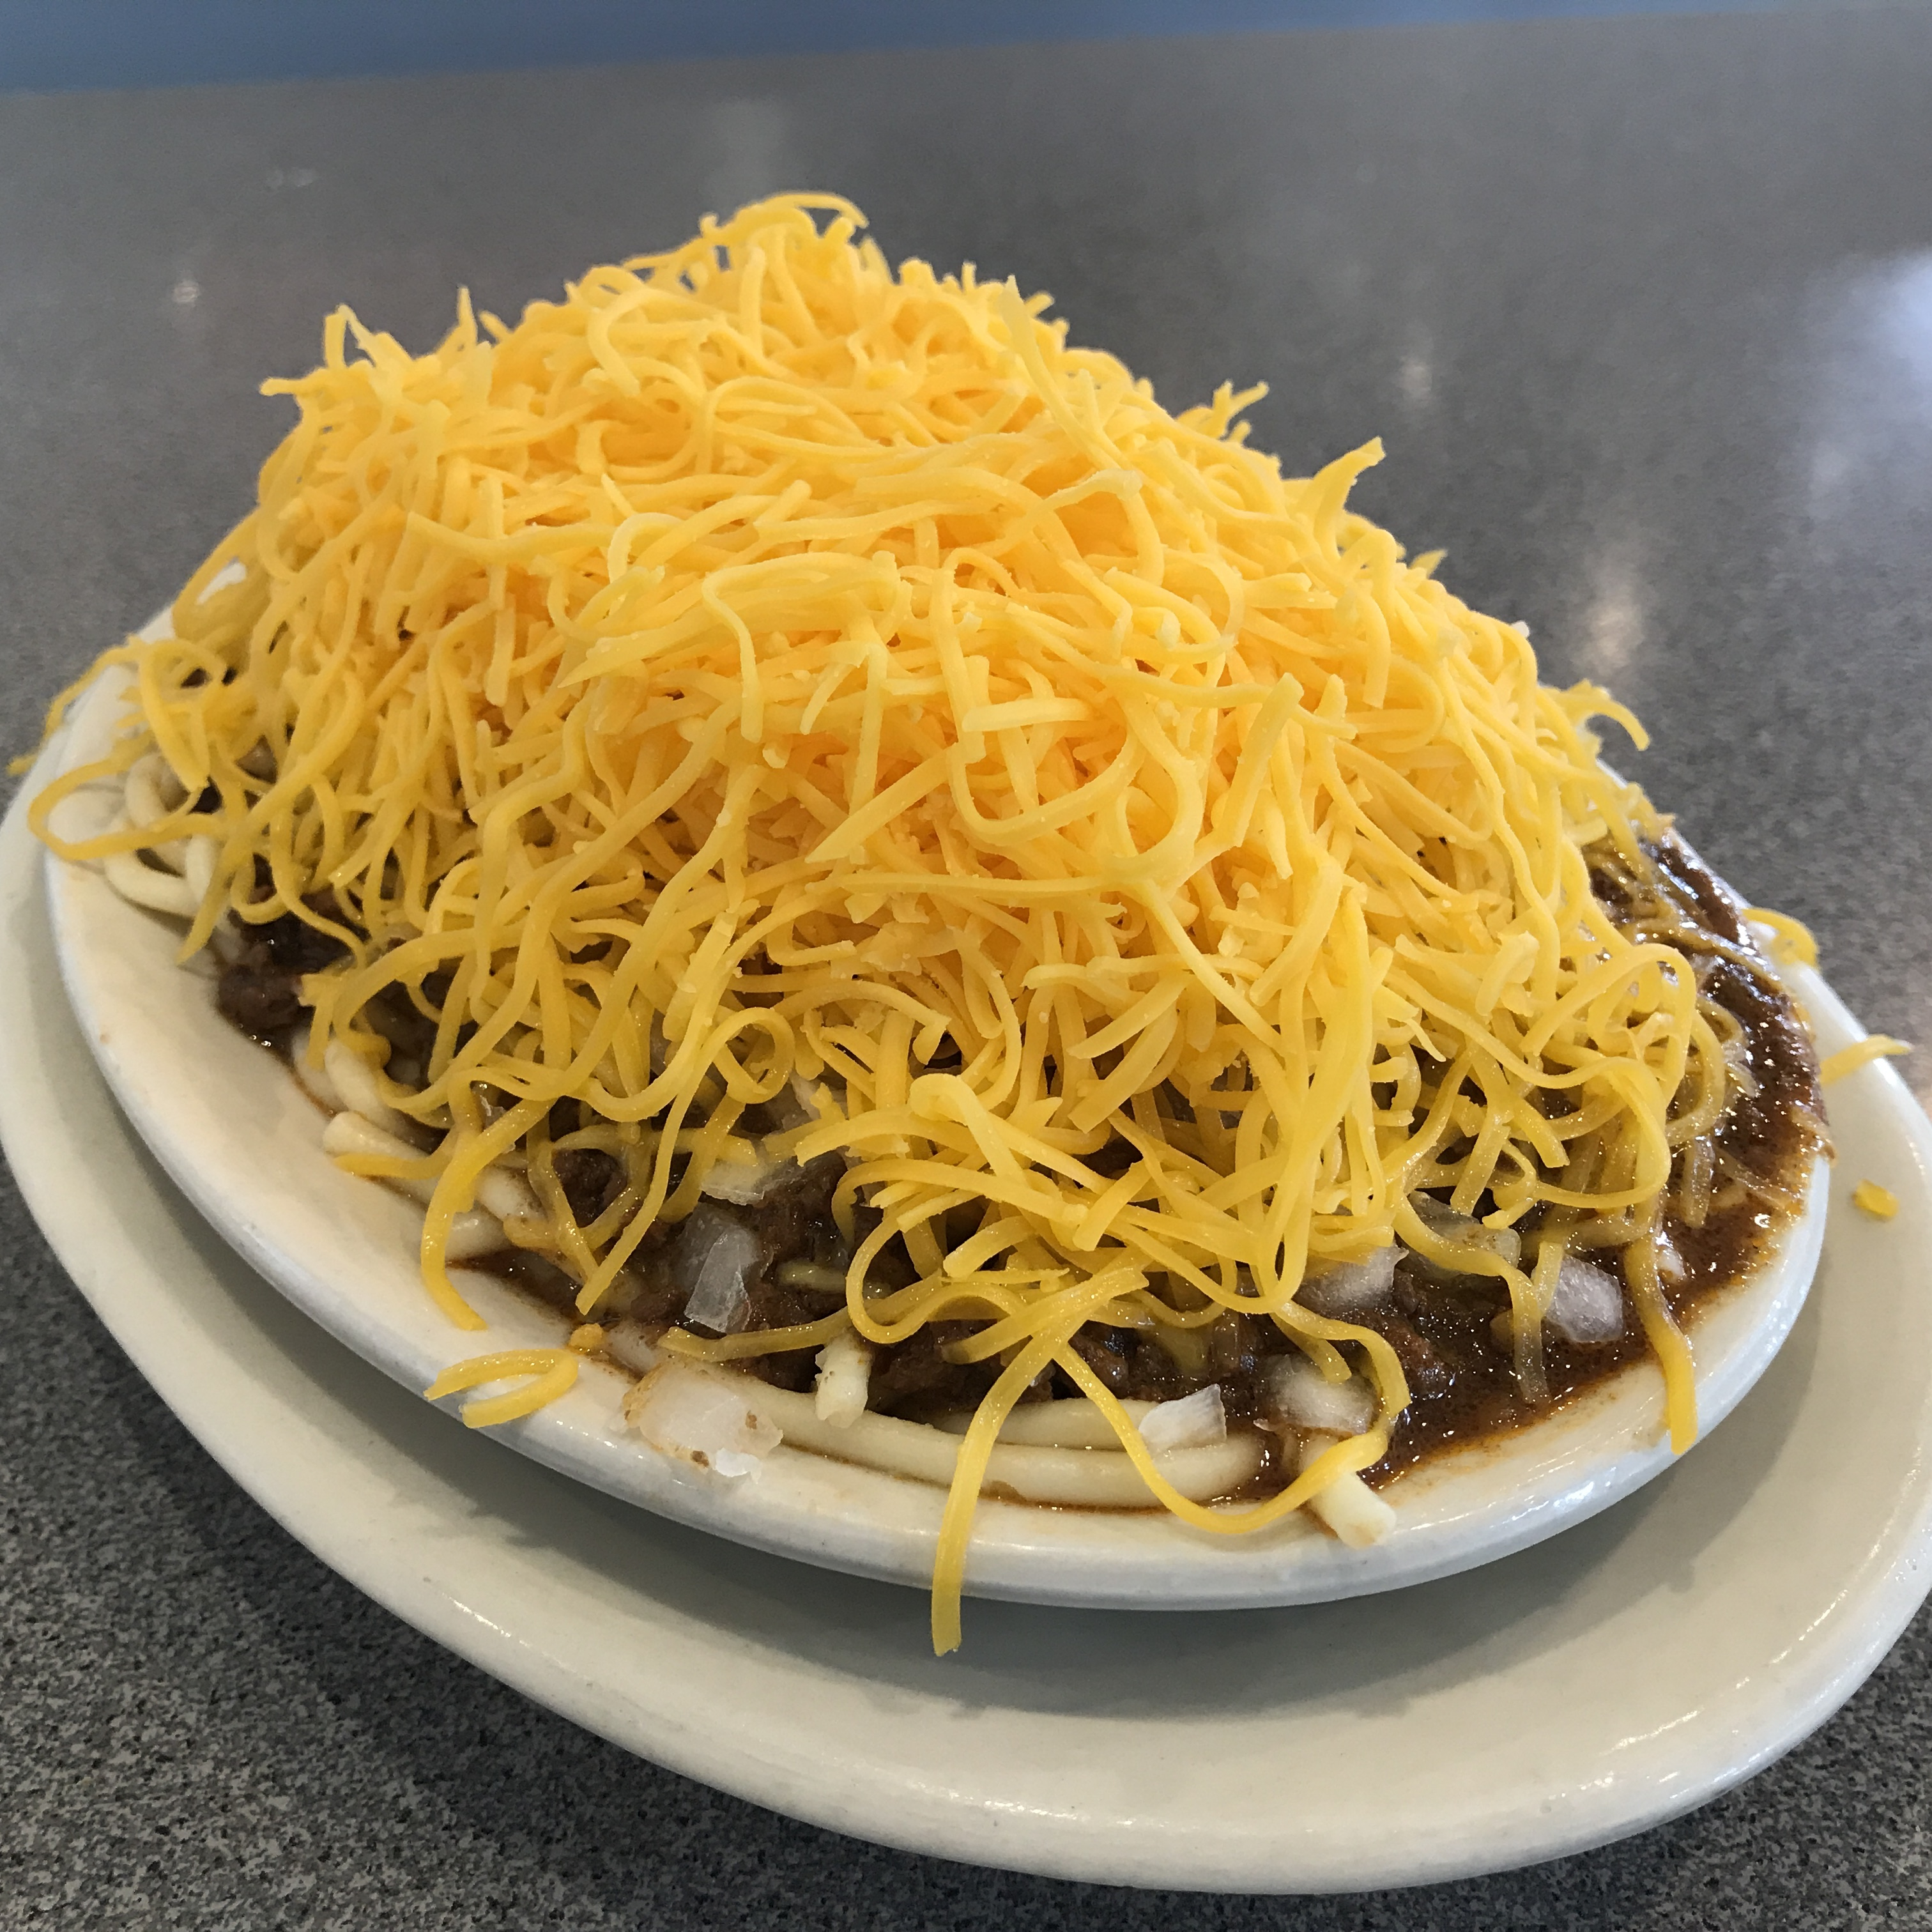 Bowl of meaty Cincinnati chili with cheddar cheese on top.